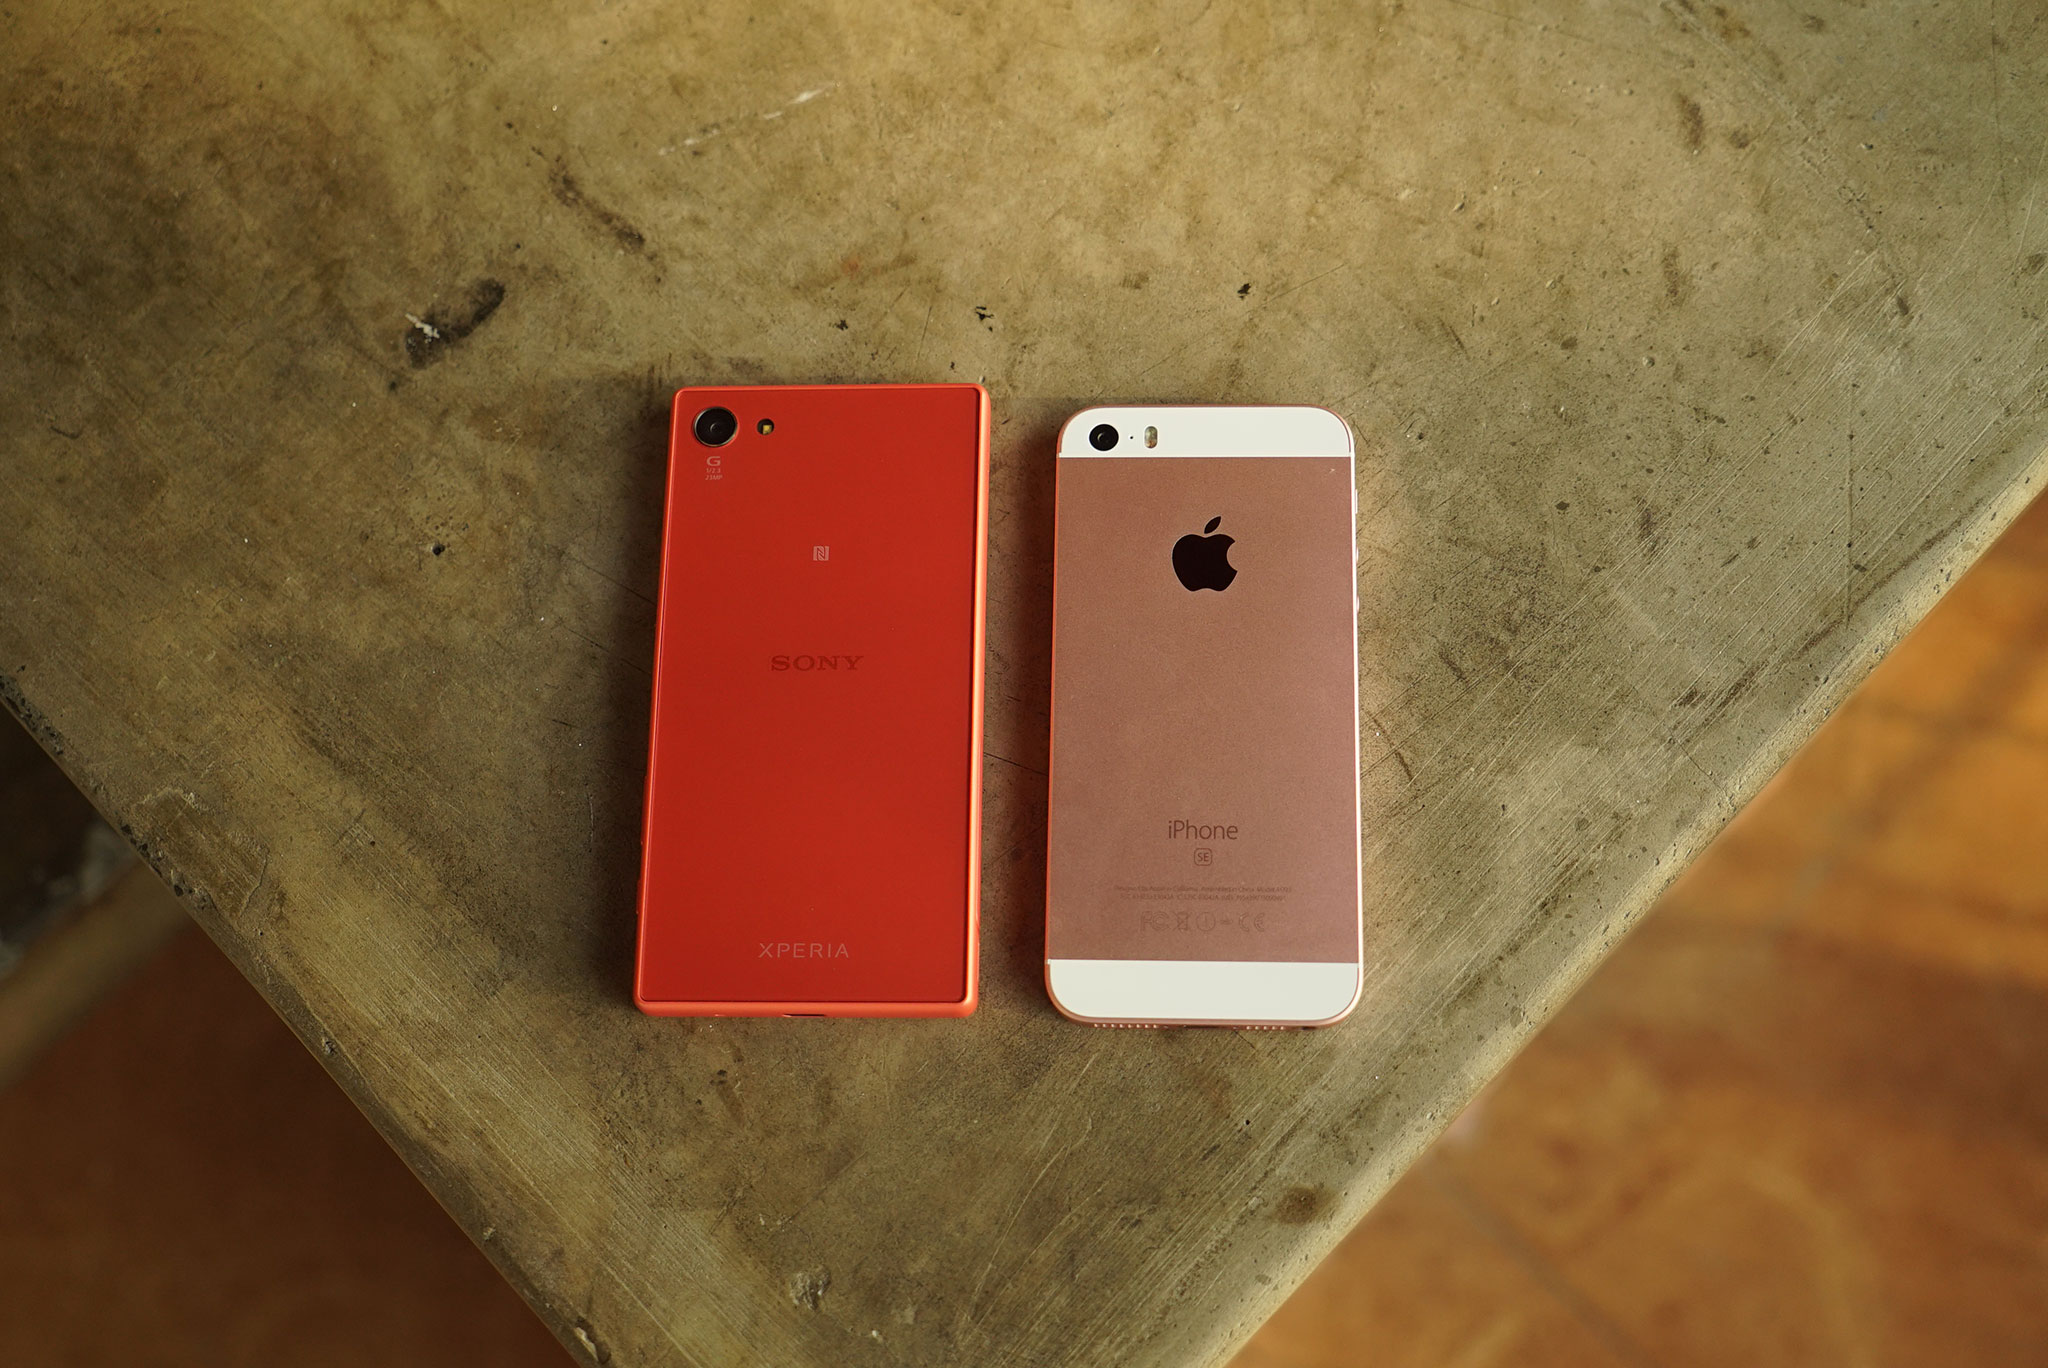 SONY XPERIA Z3 COMPACT VS IPHONE SE